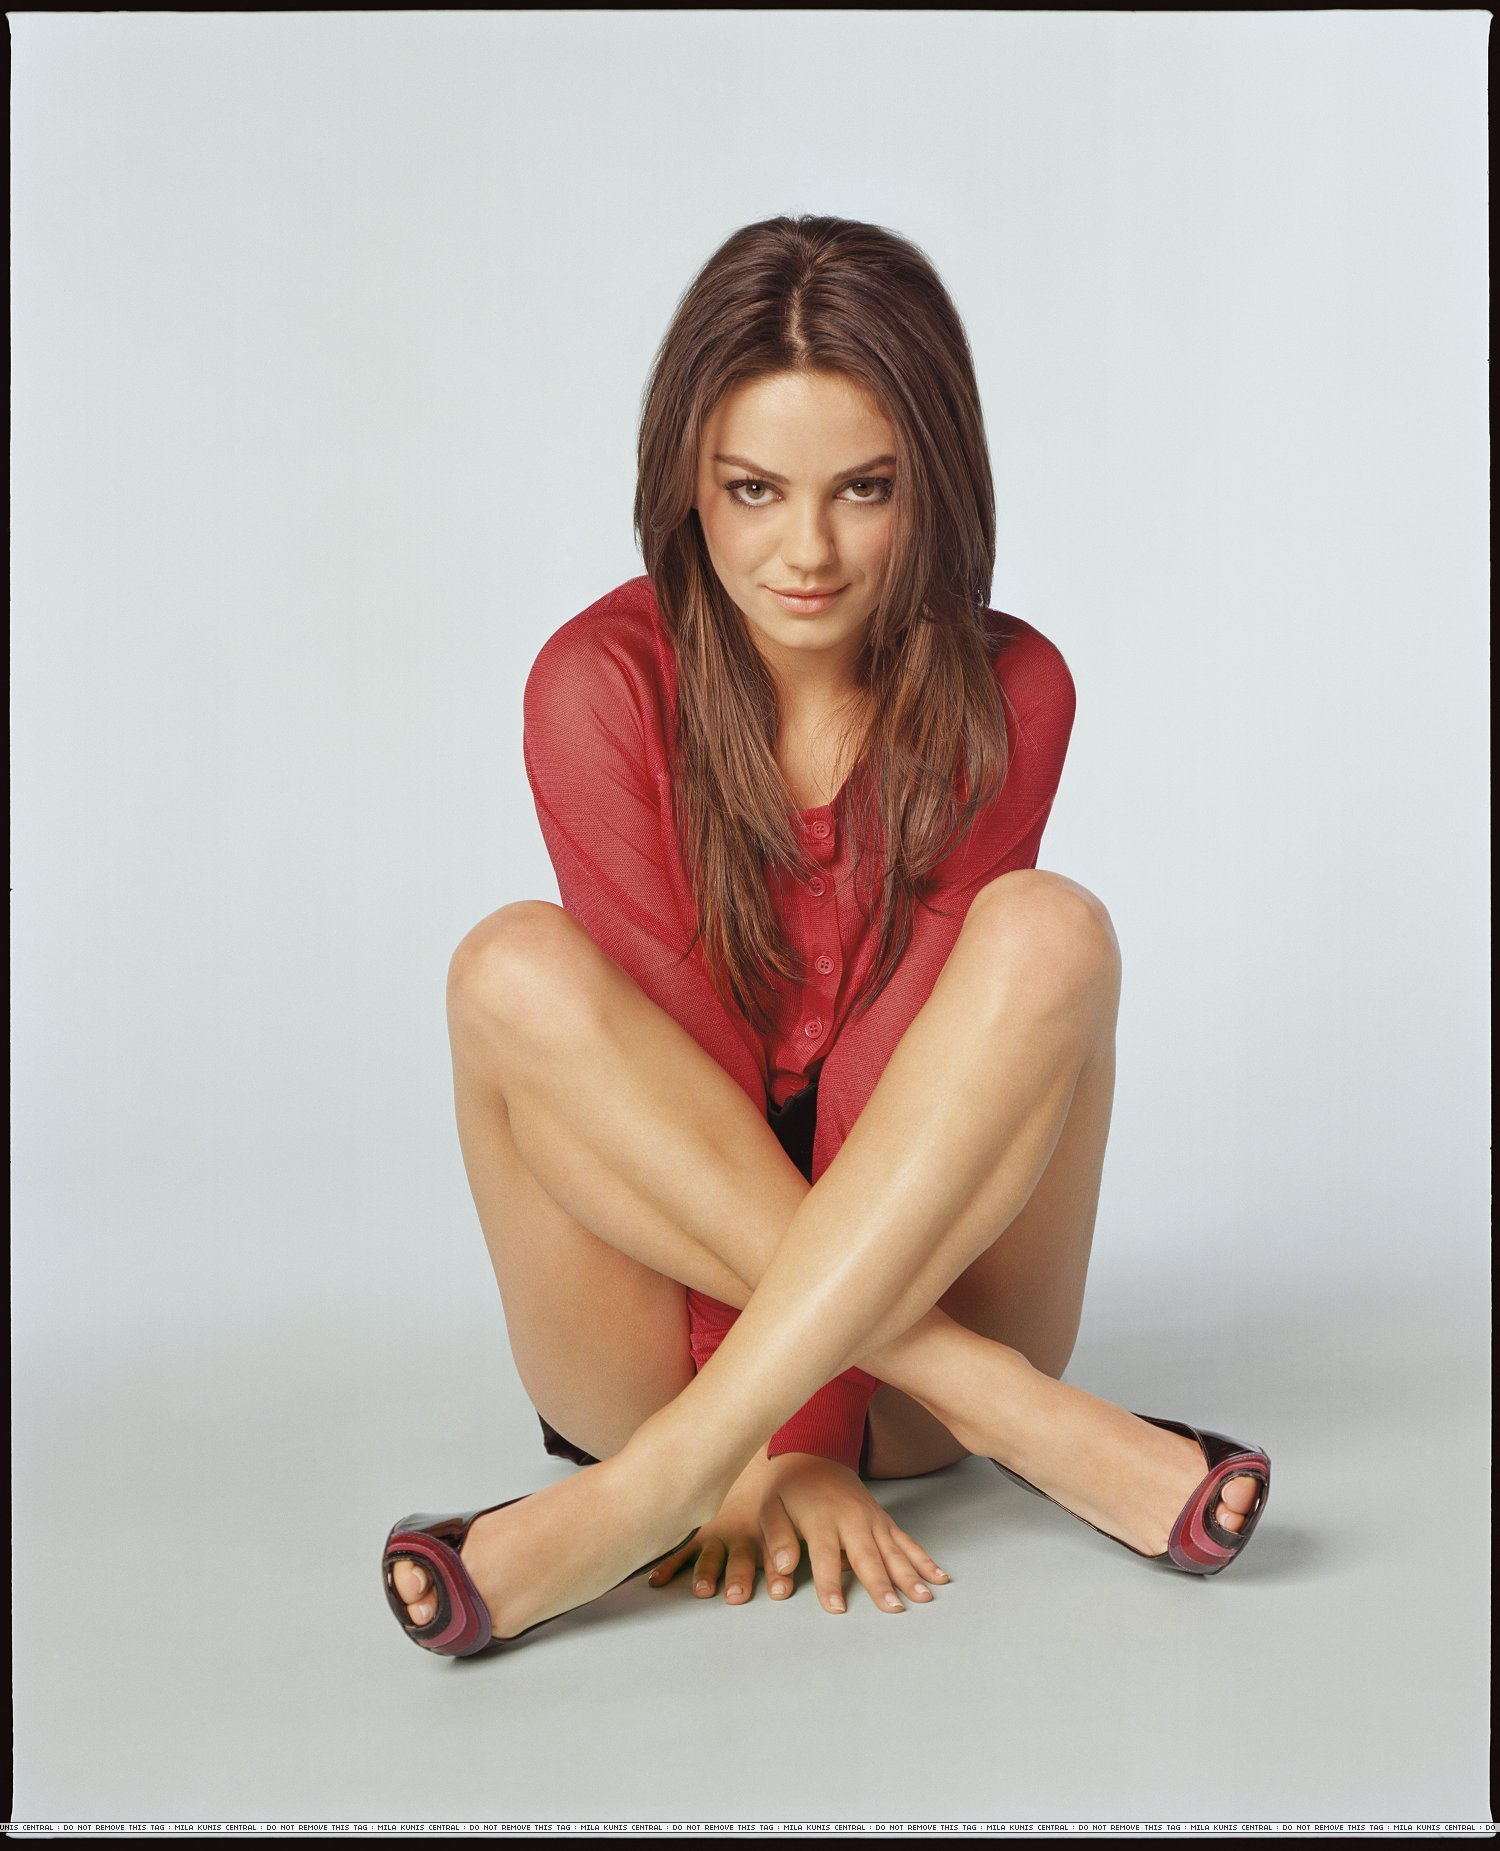 collectionmdwn mila kunis forgetting - photo #24